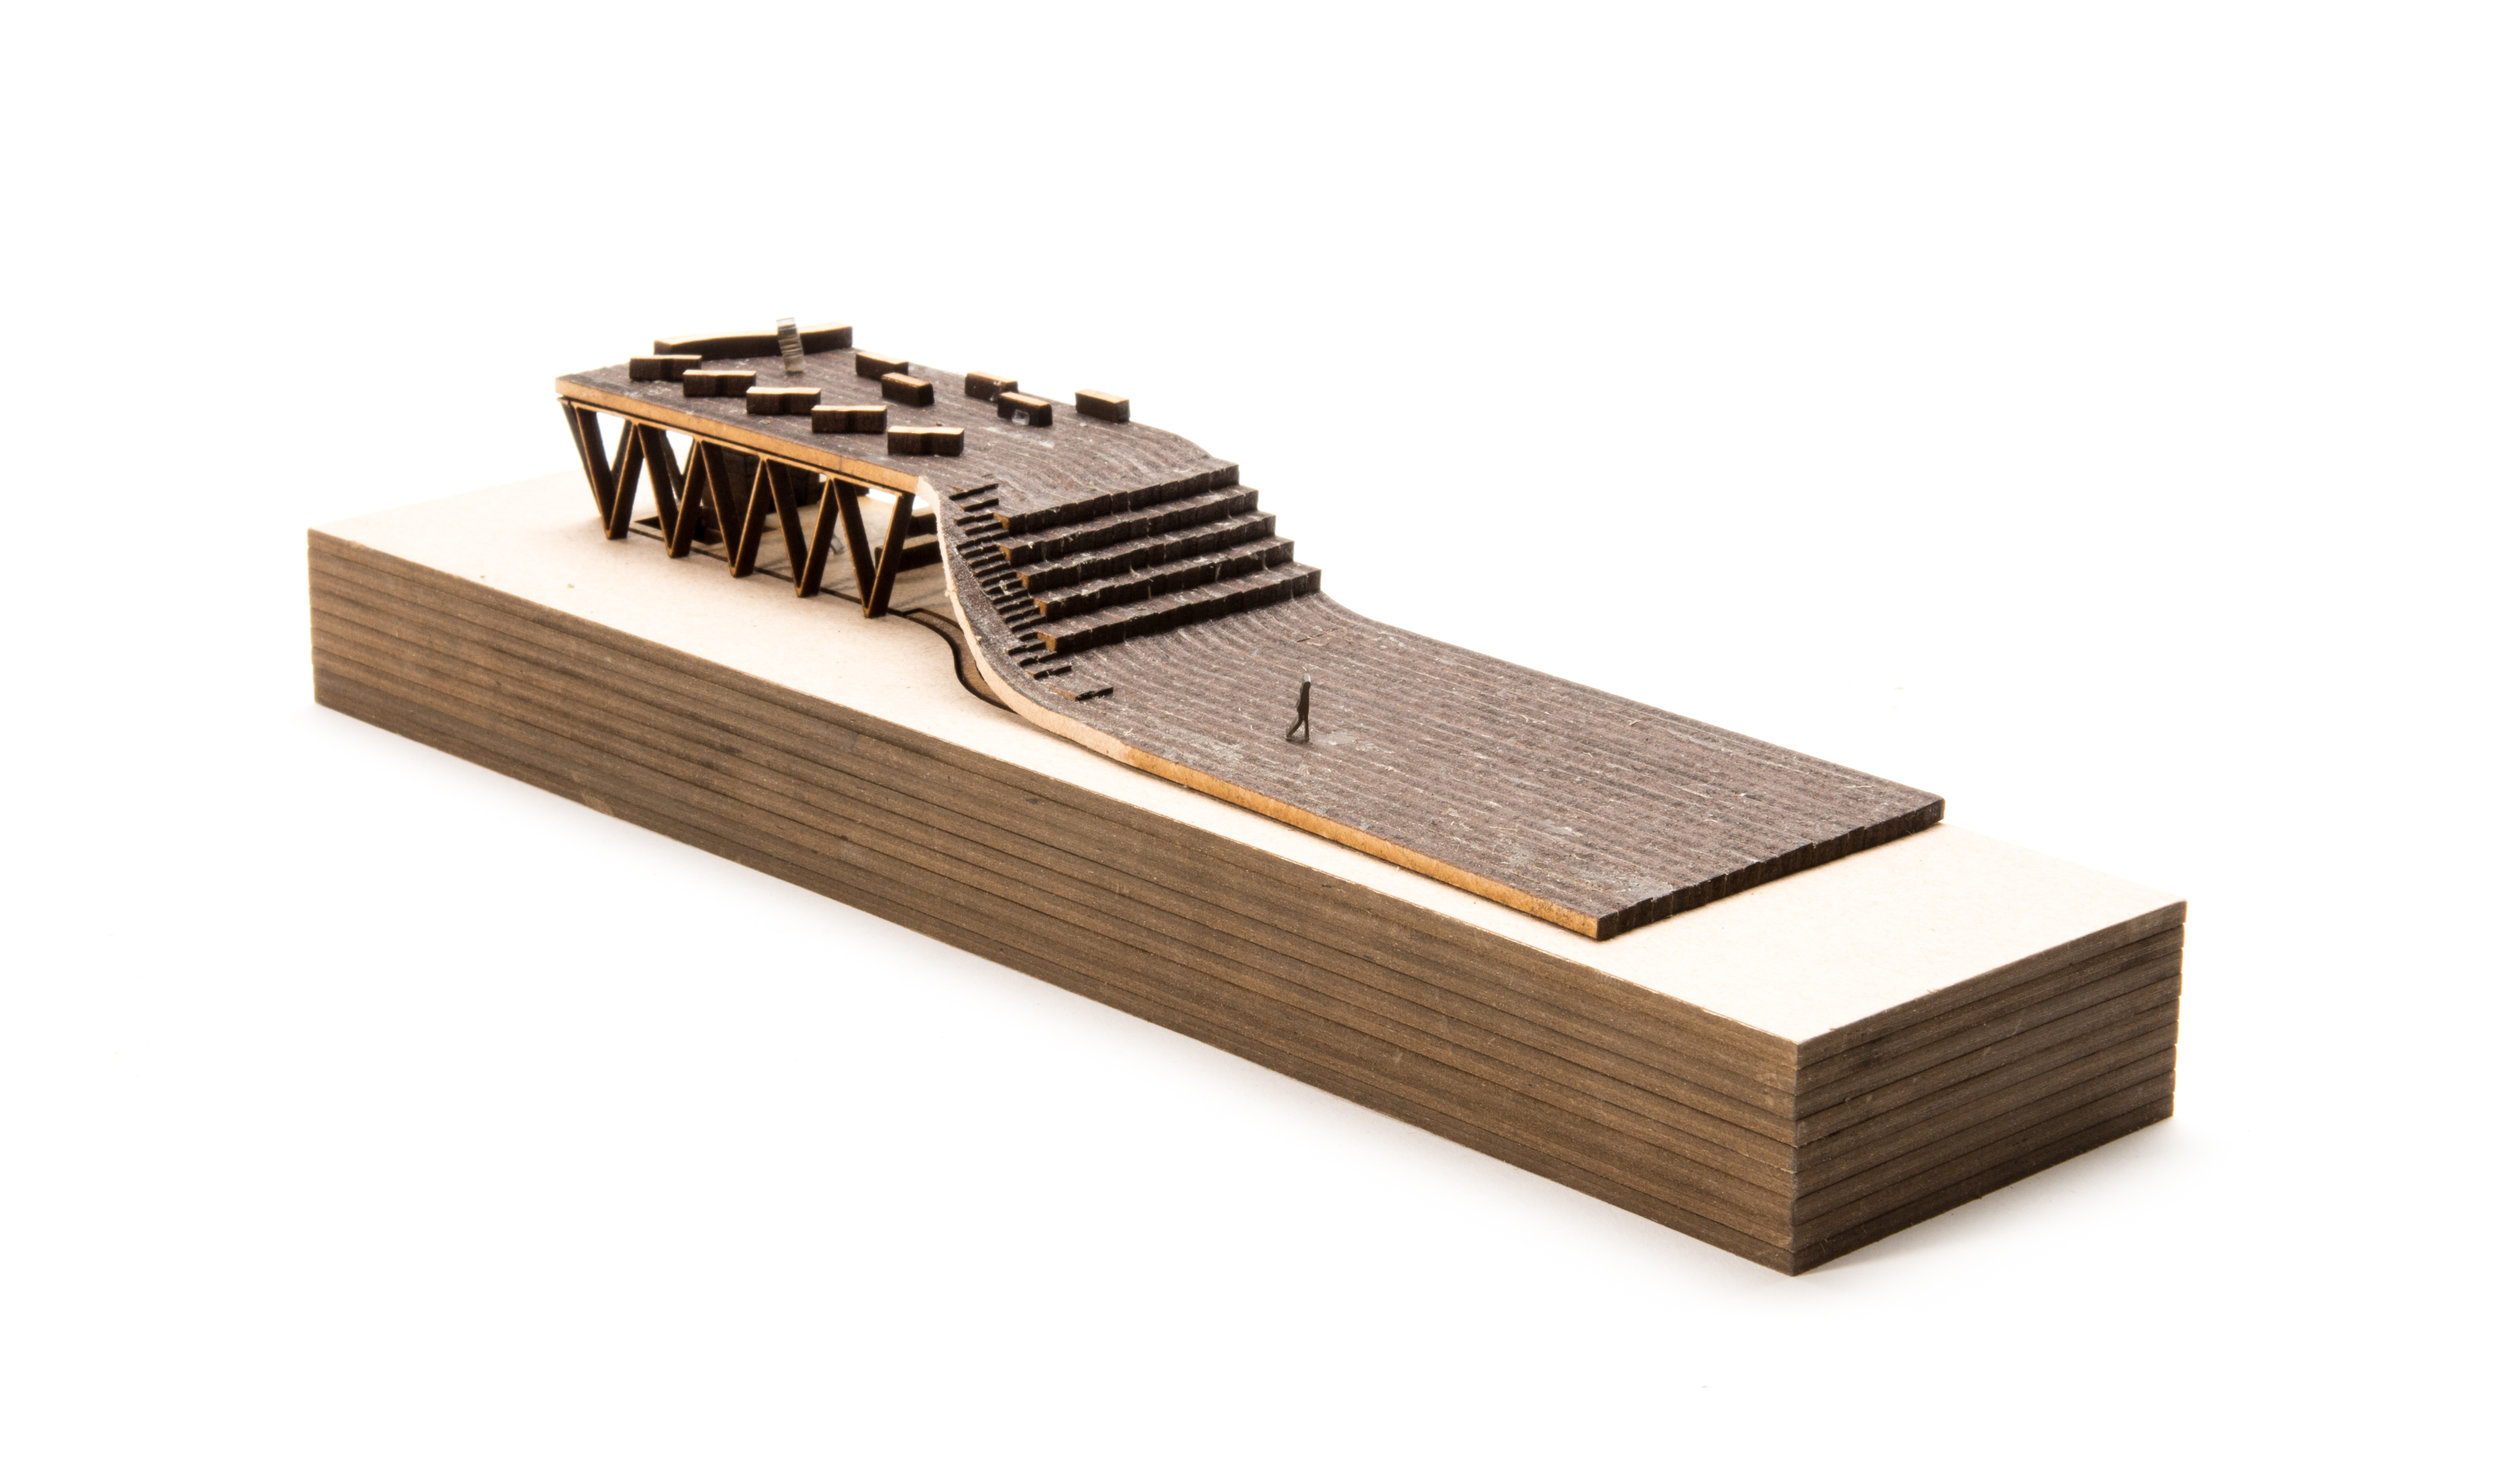 These sectional models were created to display an earlier iteration of the design, highlighting the dual sets of seating and the storage areas.